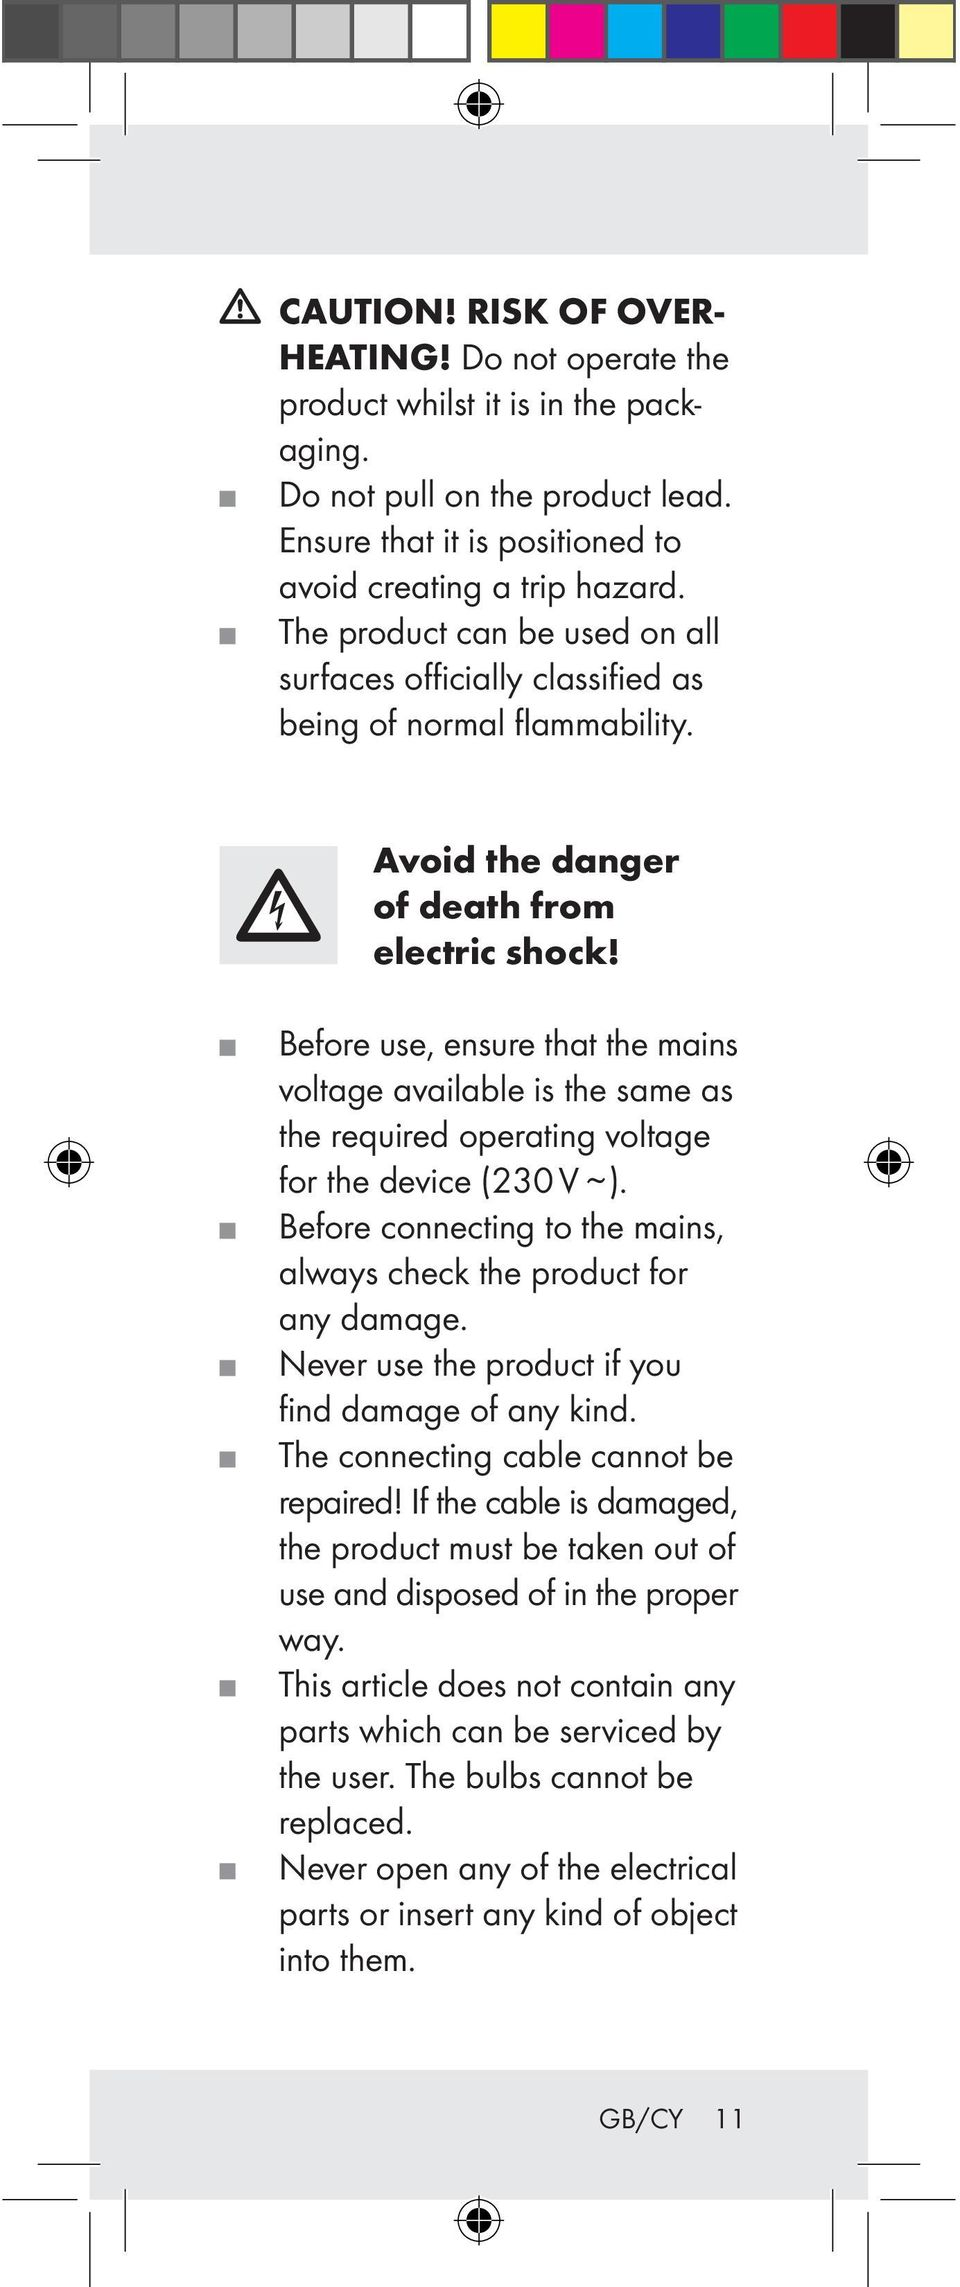 Before use, ensure that the mains voltage available is the same as the required operating voltage for the device (230 V ~ ). Before connecting to the mains, always check the product for any damage.